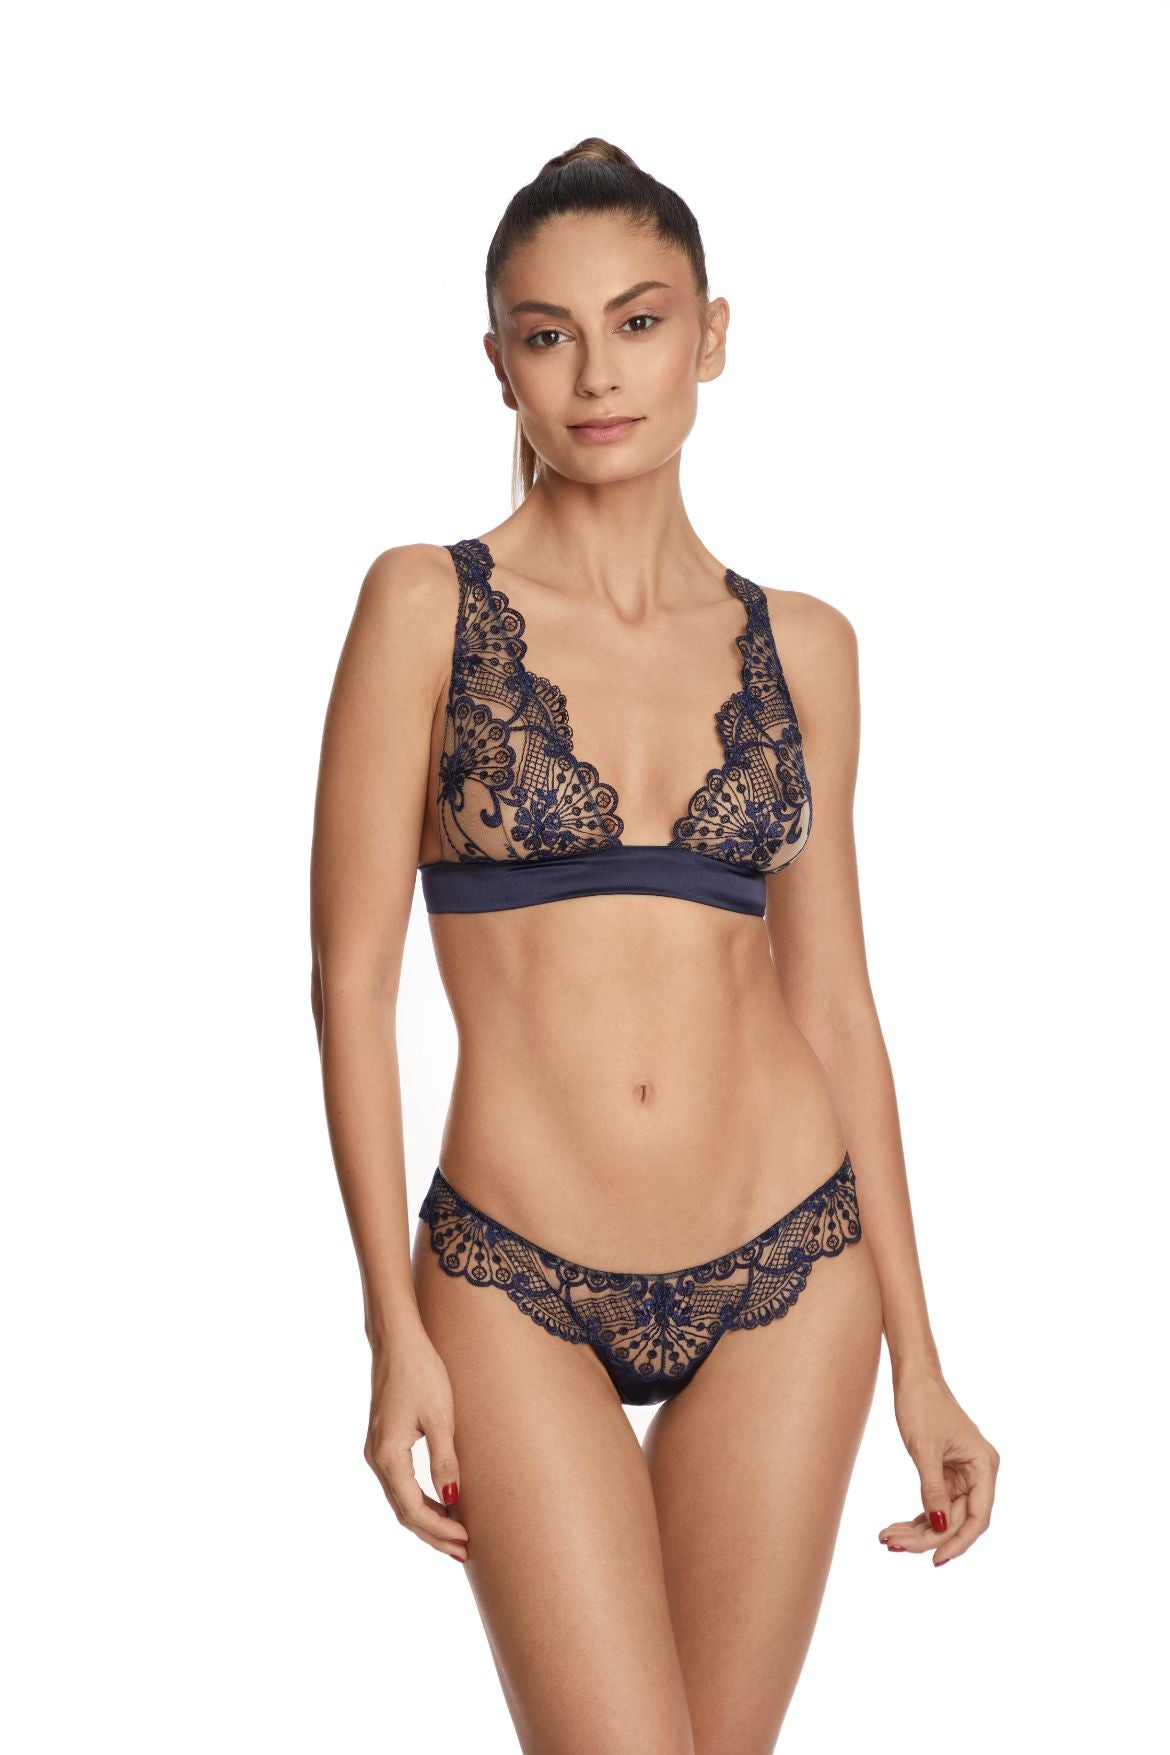 Moonlight Triangle Bra in Midnight Blue - I.D. Sarrieri